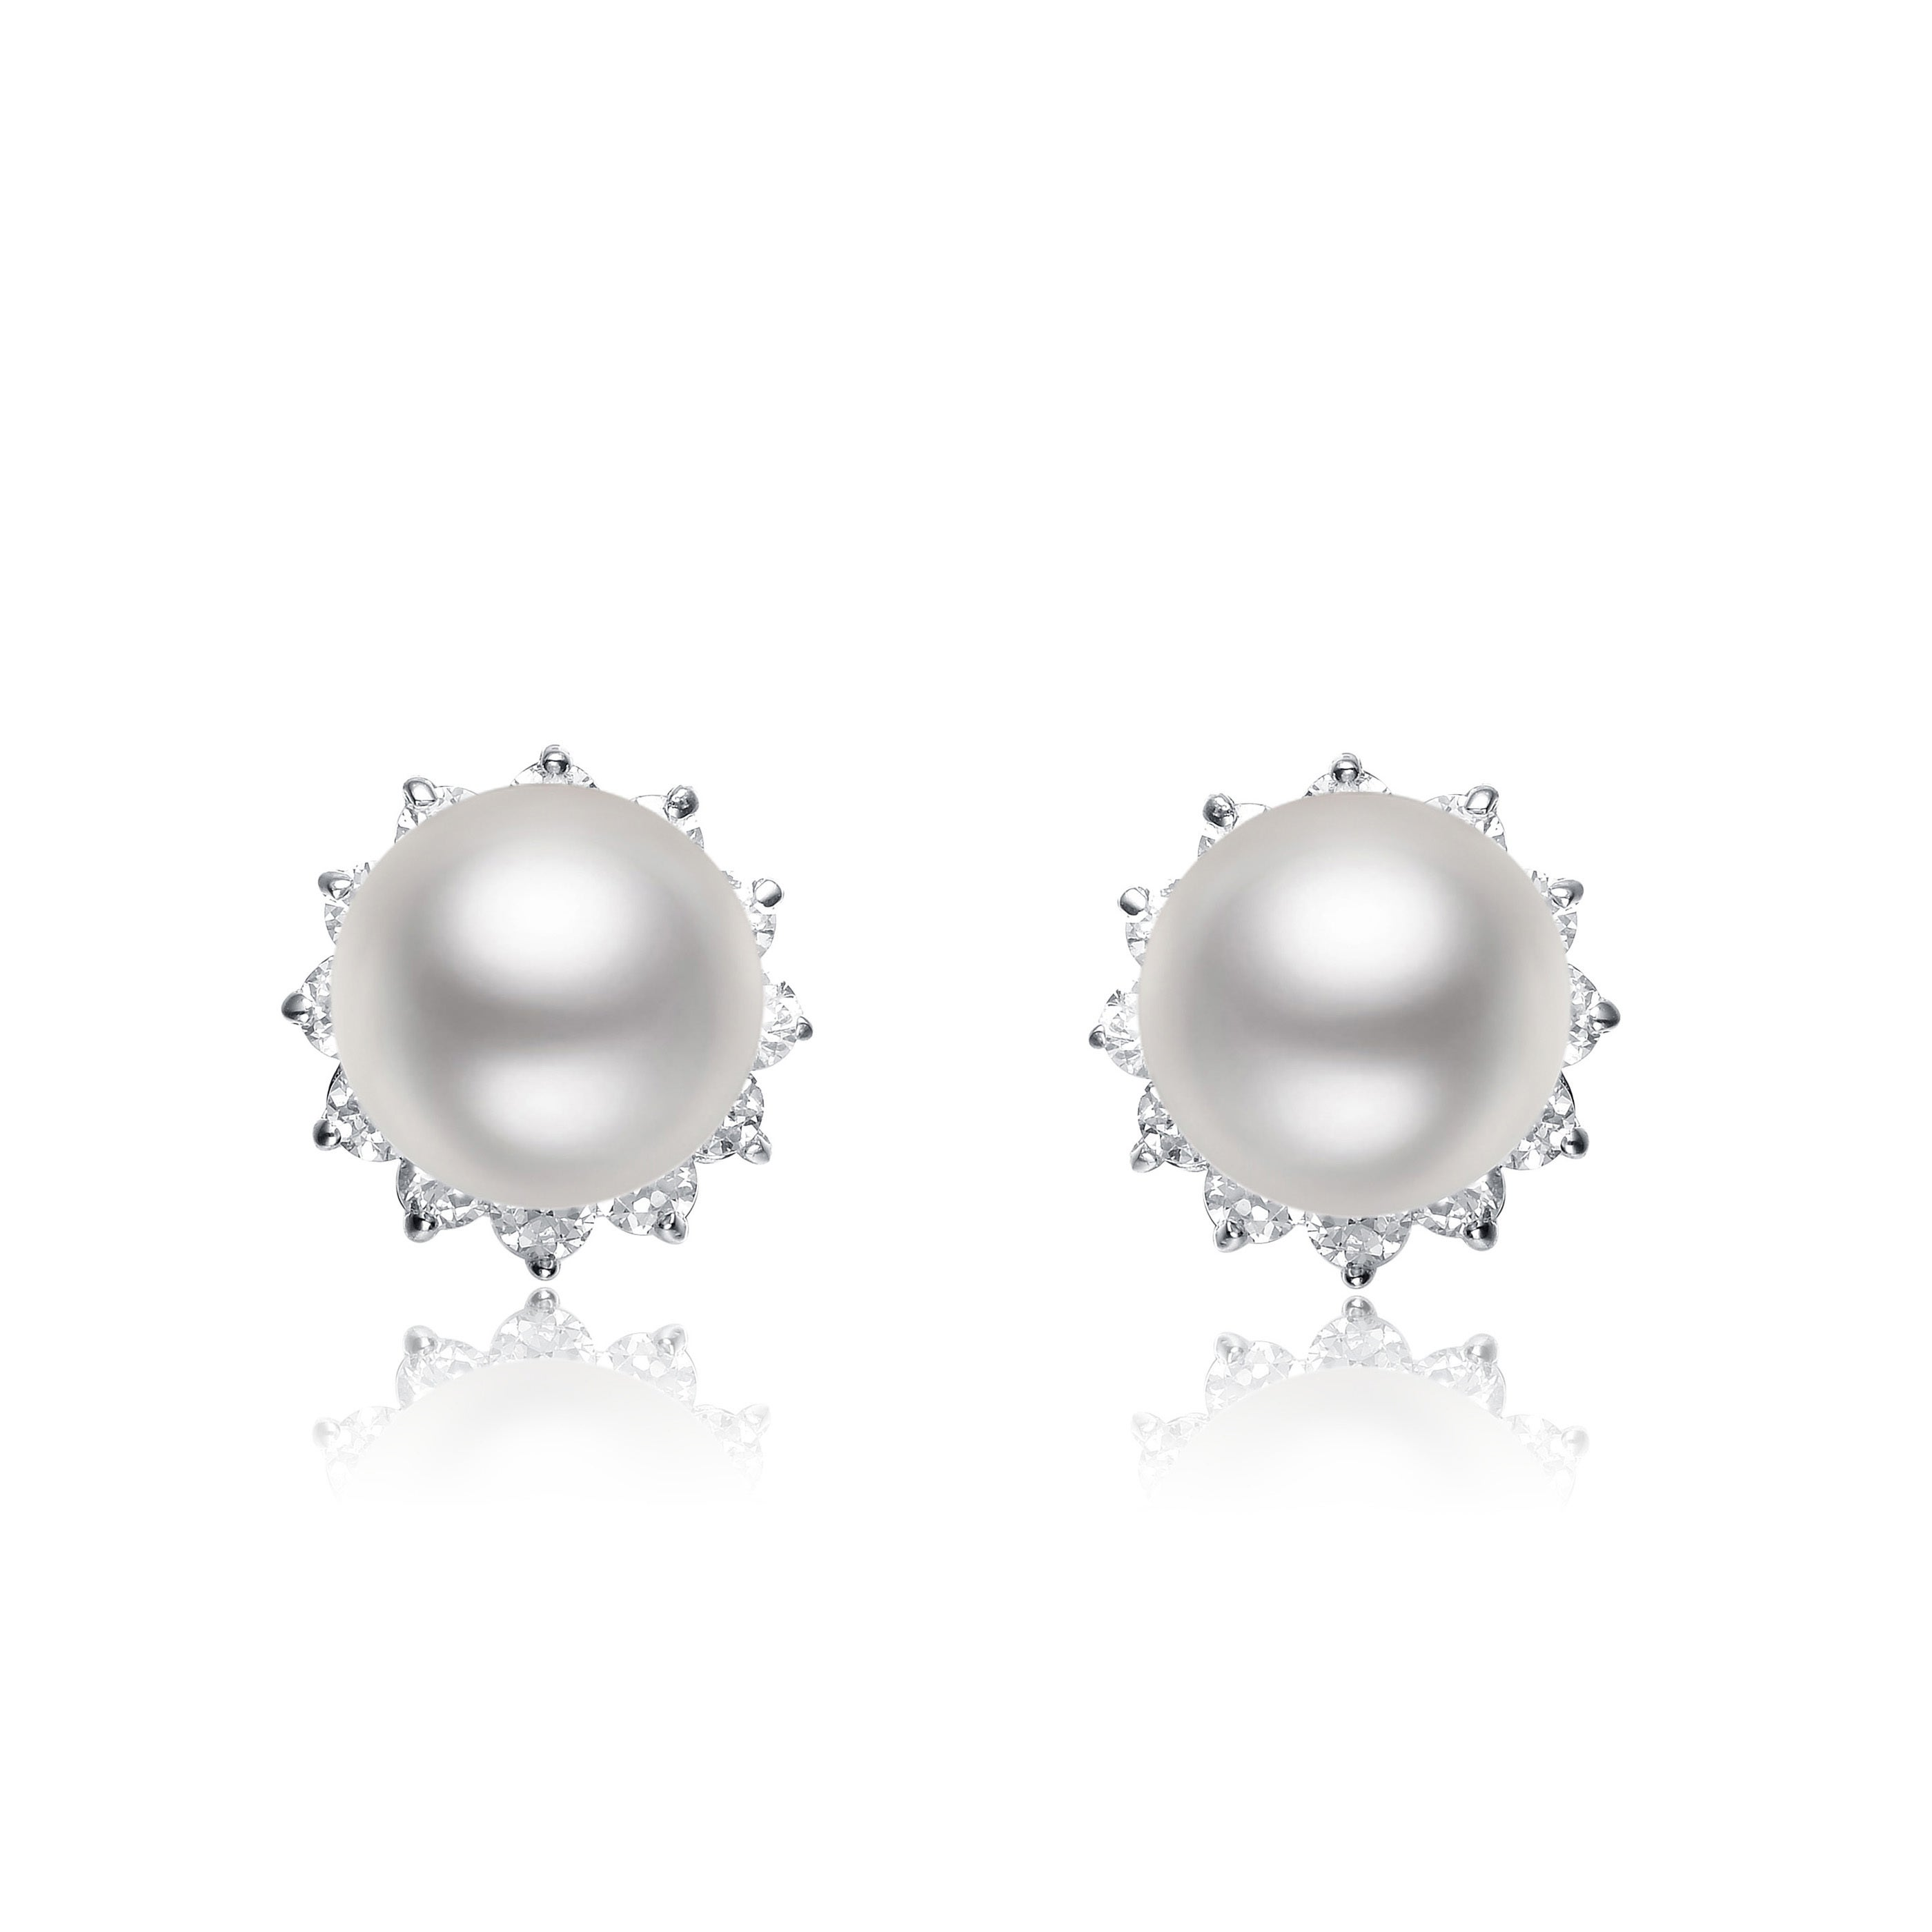 zm earrings knob en kay mv stud sterling kaystore silver diamond